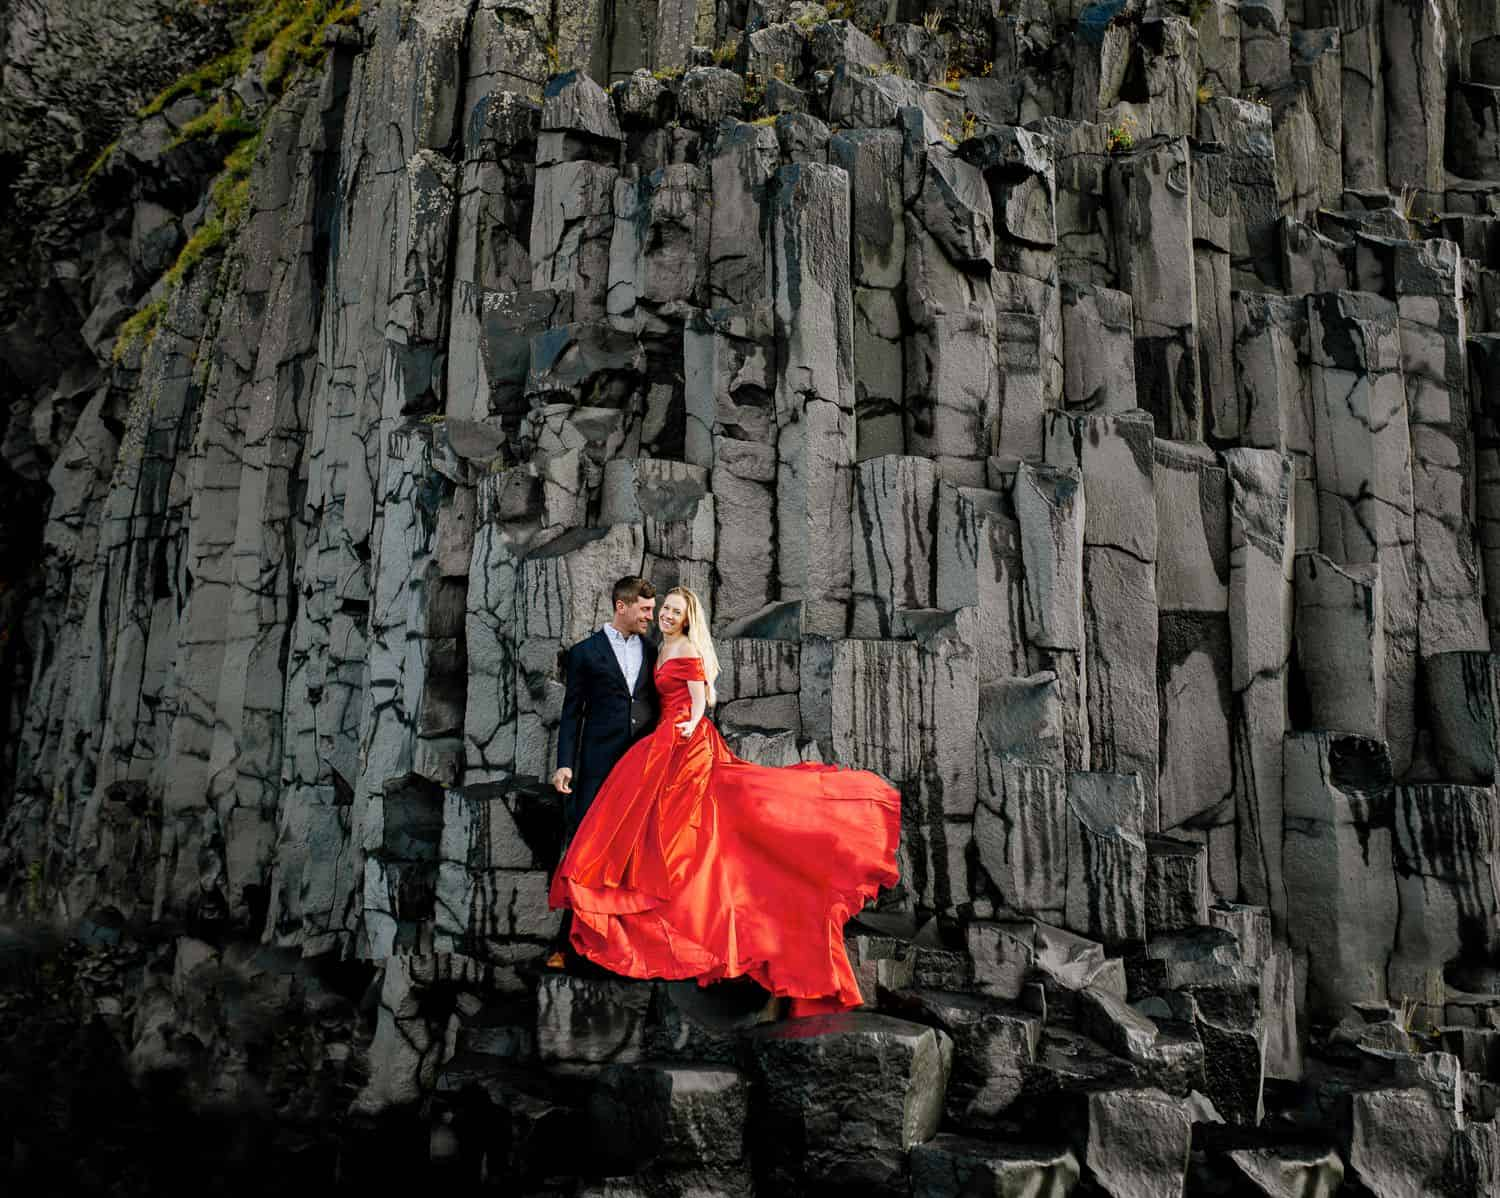 Man in a black suit and woman in a billowing red gown stand on a rock face in Iceland